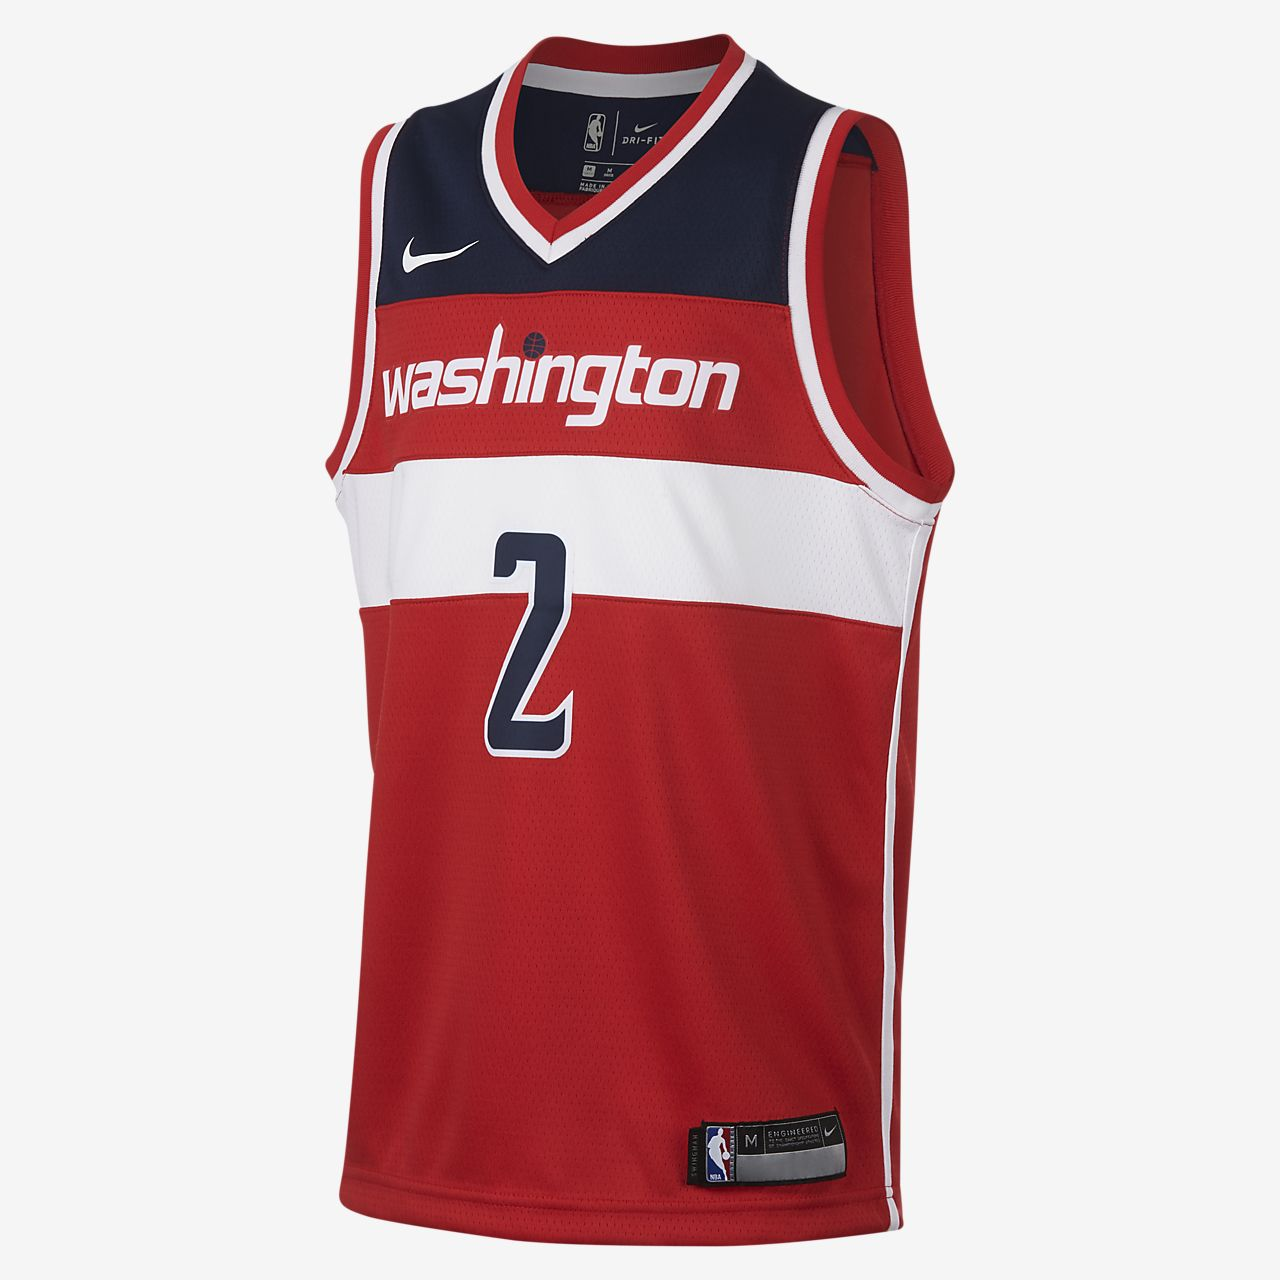 b9d01bb632c Big Kids' Jersey. John Wall Washington Wizards Nike Icon Edition Swingman